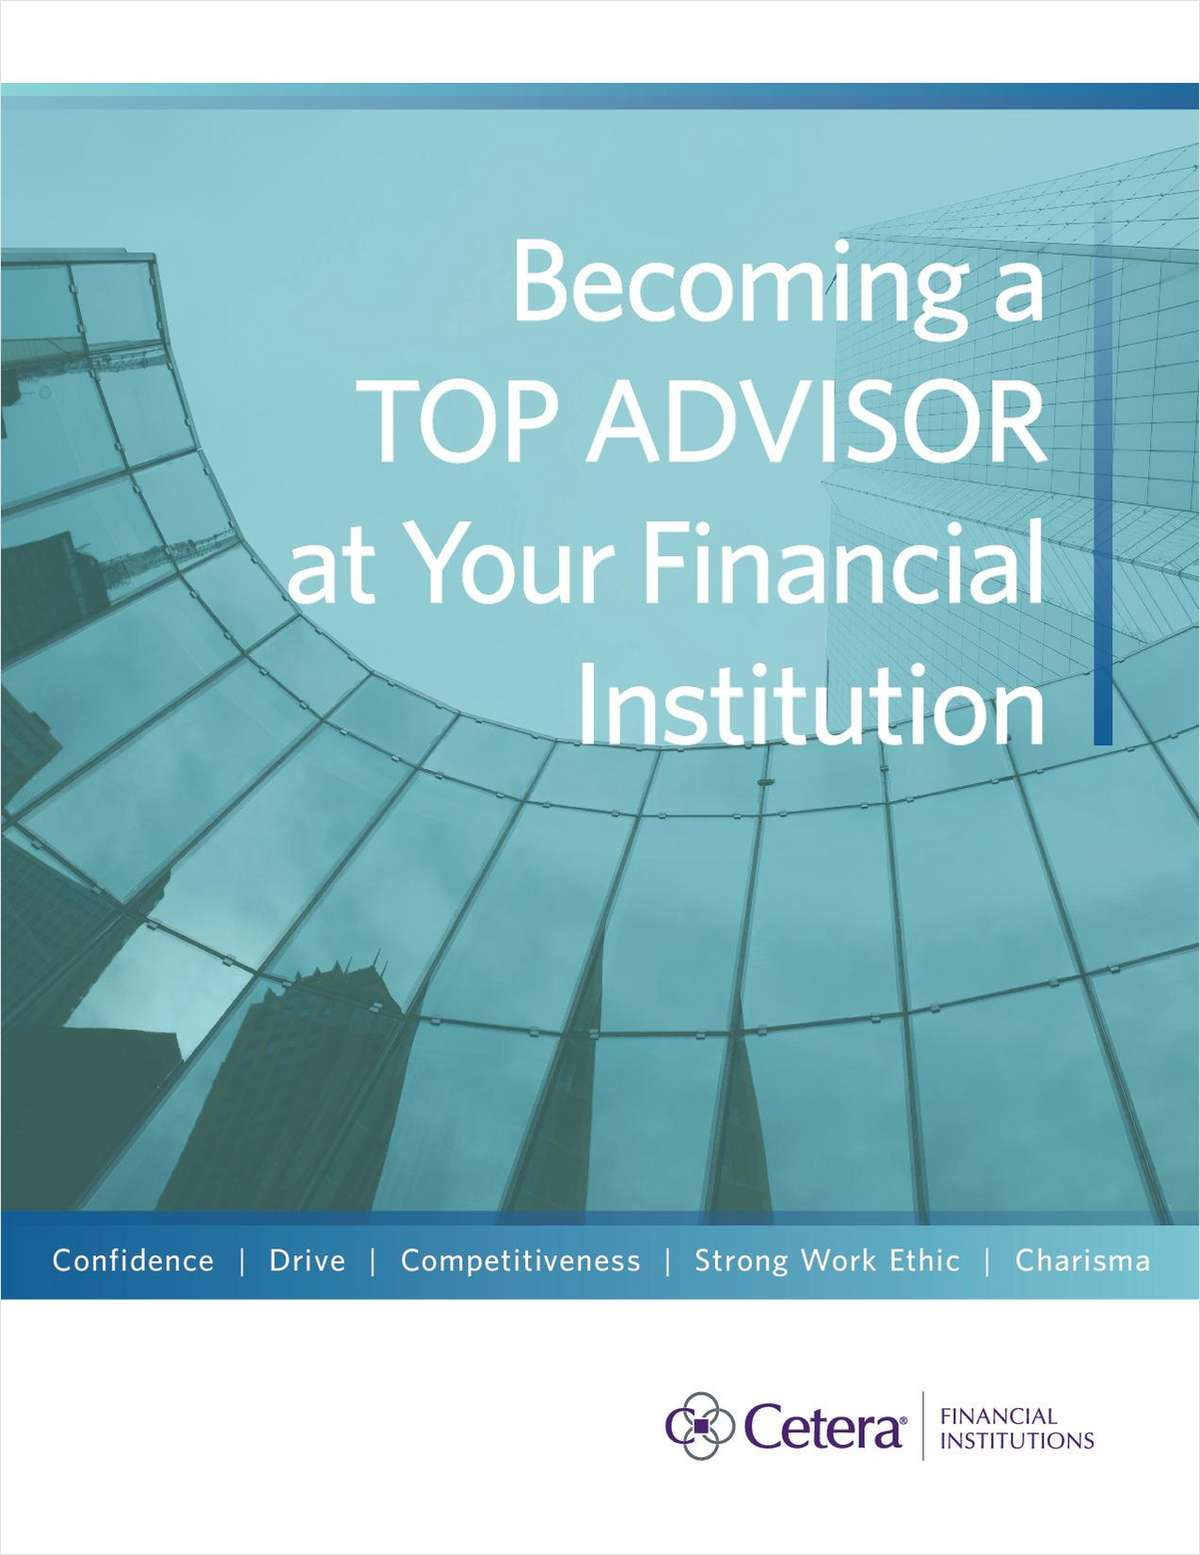 How to Become a Top Advisor at Your Credit Union